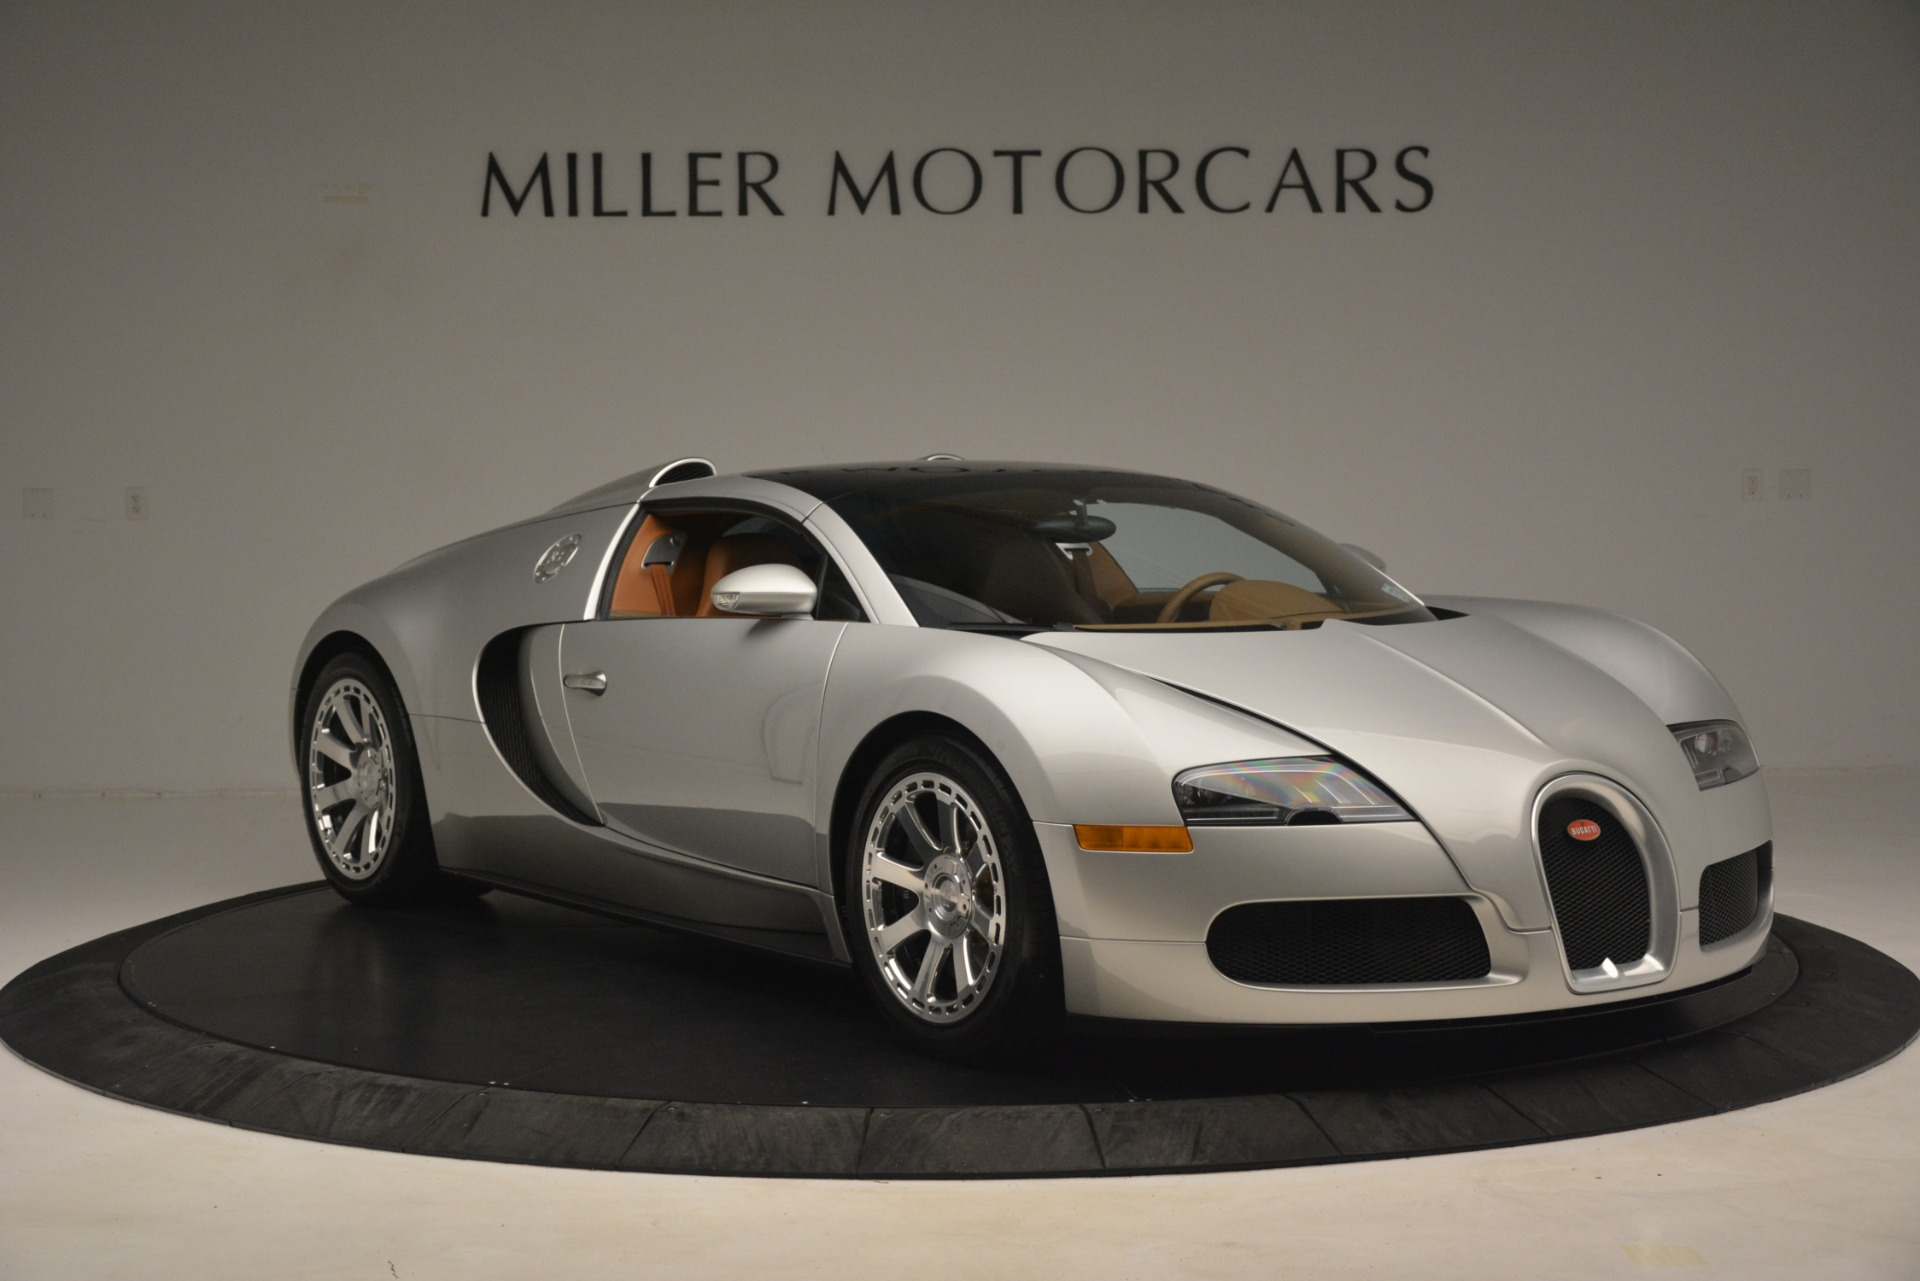 Used 2010 Bugatti Veyron 16.4 Grand Sport For Sale In Westport, CT 3159_p21